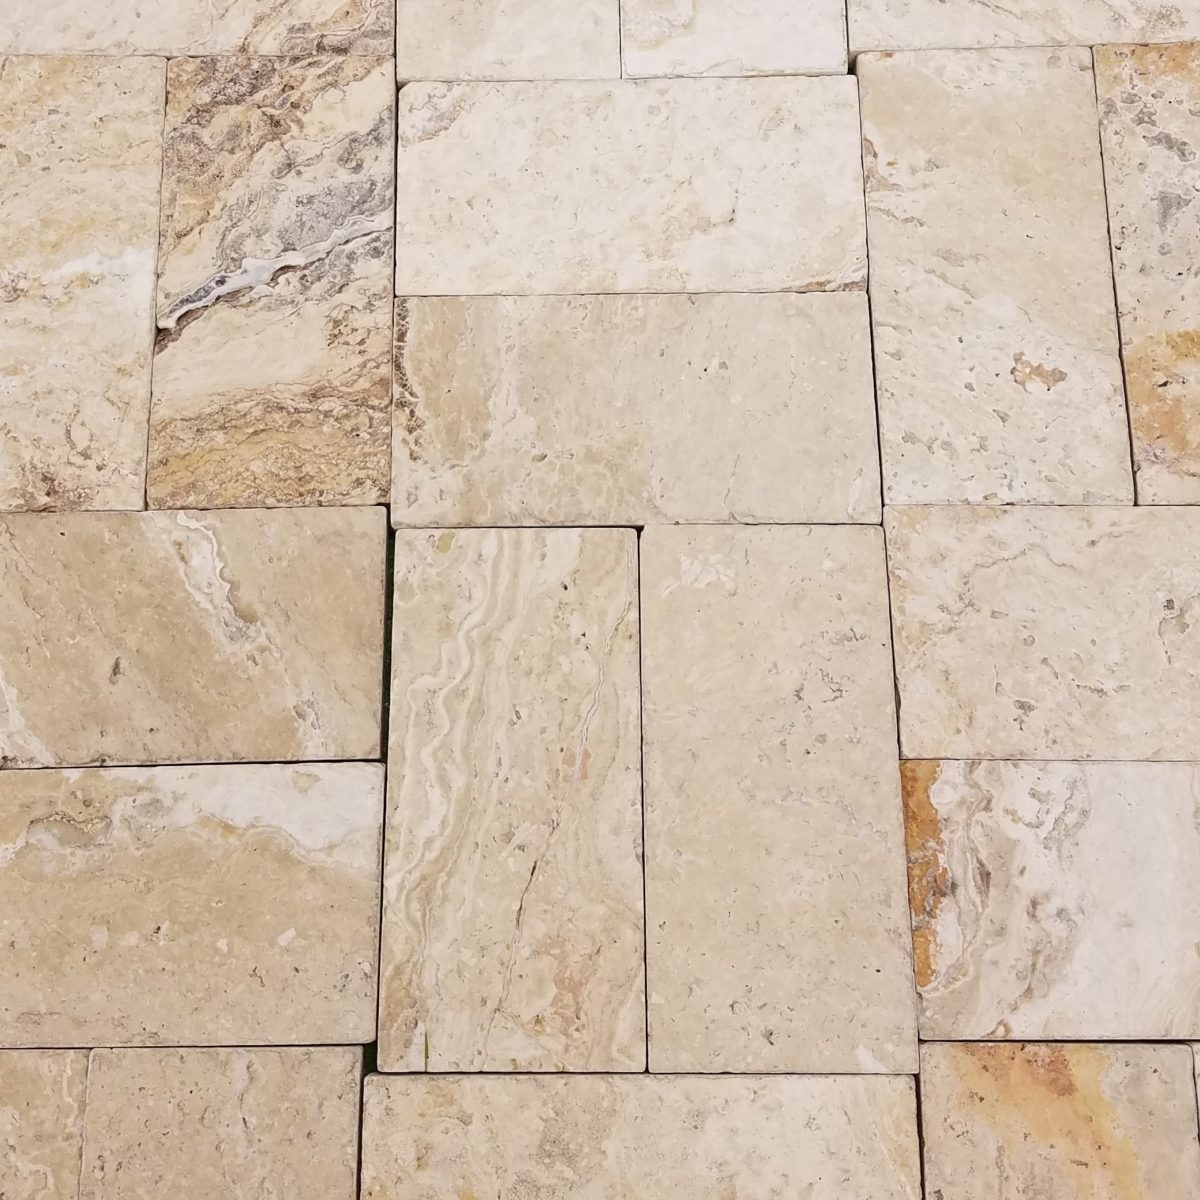 6×12 Leonardo Tumbled Pavers | Travertine and Marble – Tiles